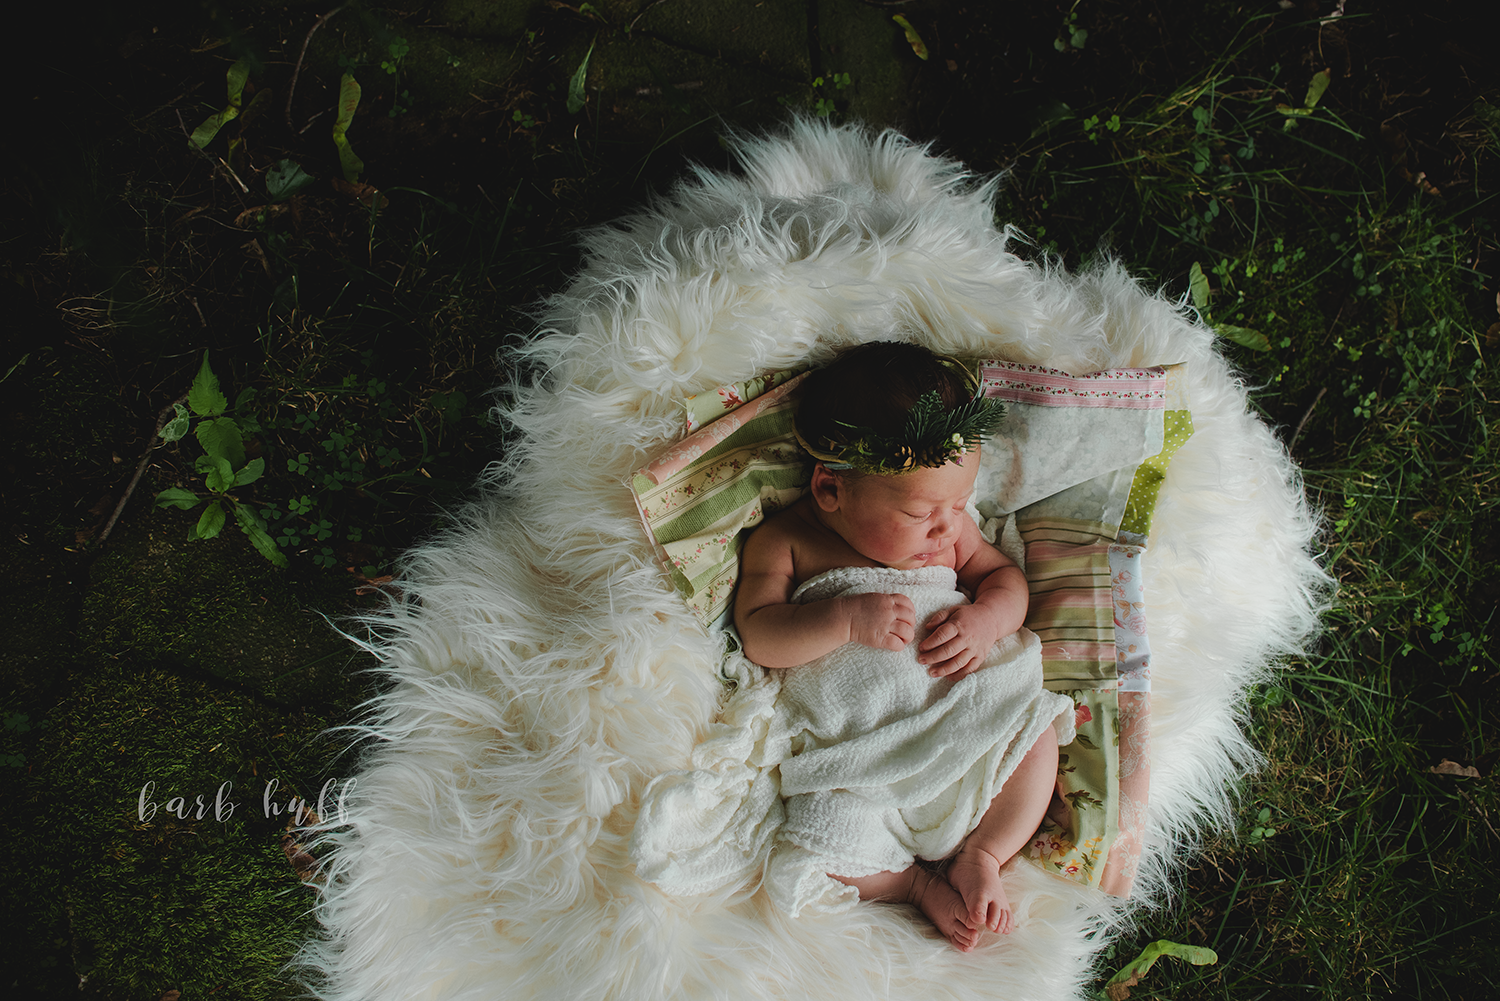 bjp-baby-newborn-family-lifestyle-outdoors-on-location-photographer-dover-ohio-new-philadelphia-tasha14.png